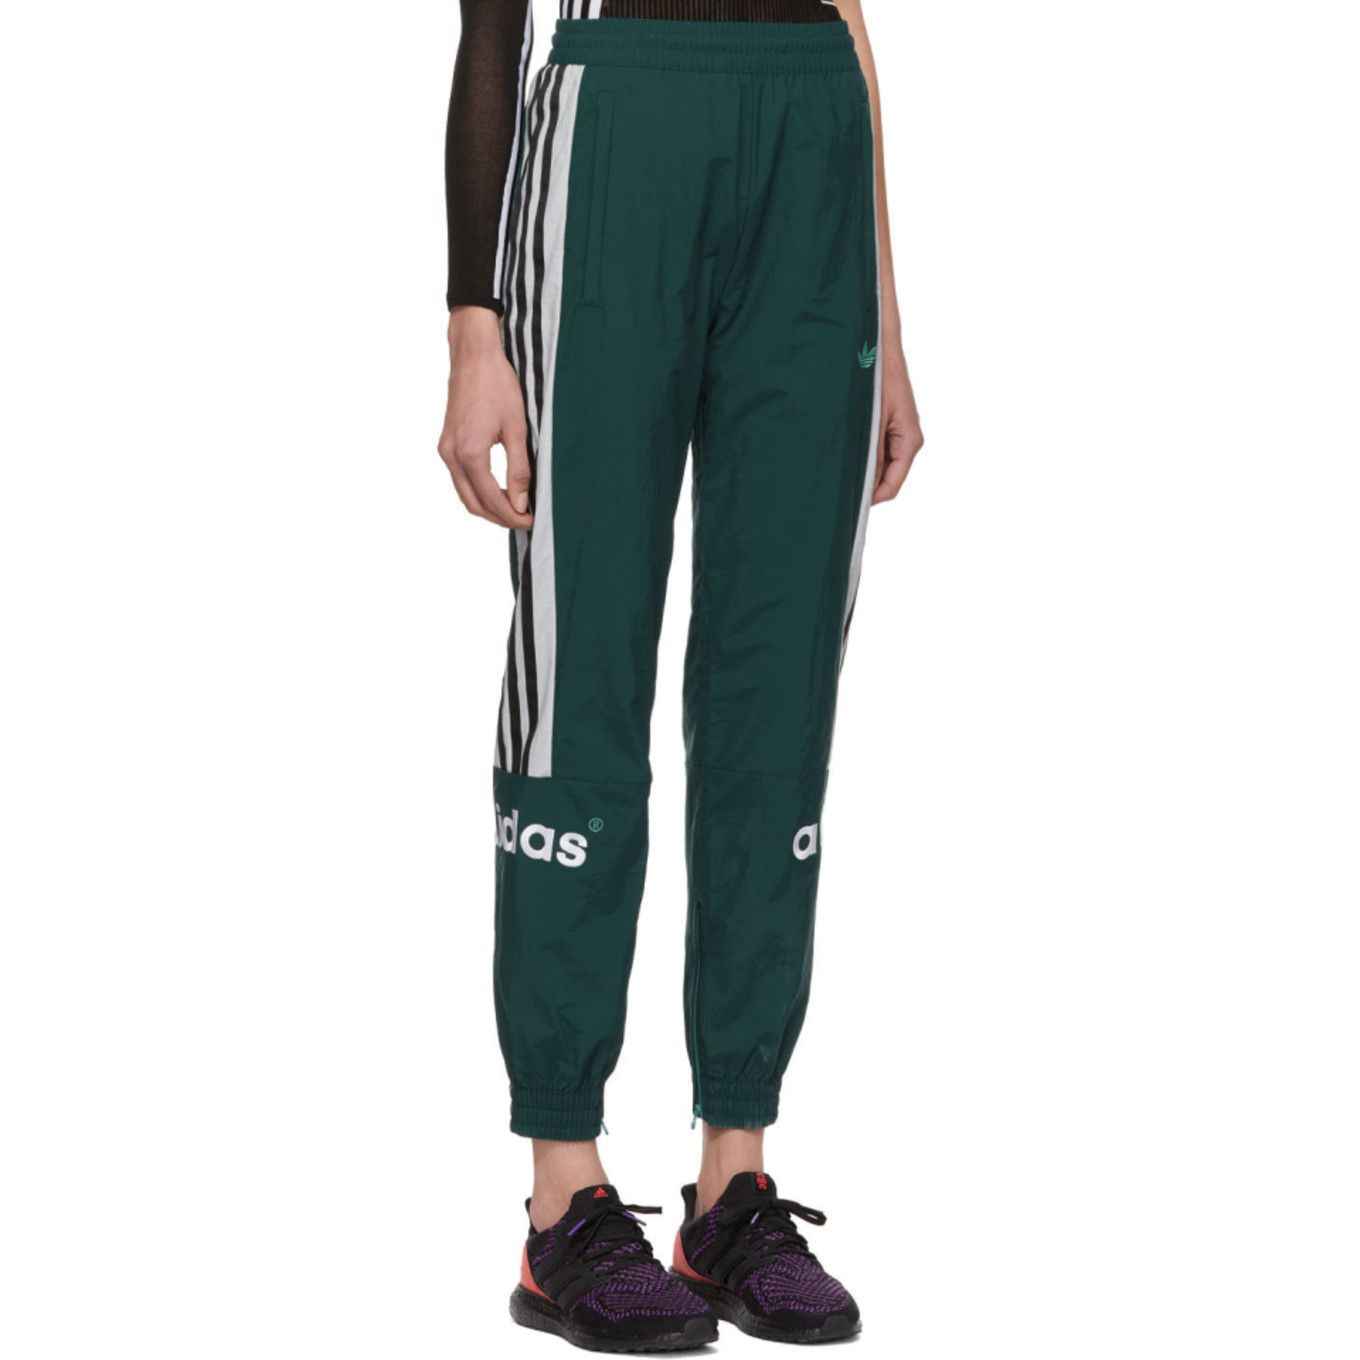 adidas Originals: Green 92 Archive Track Pants | SSENSE